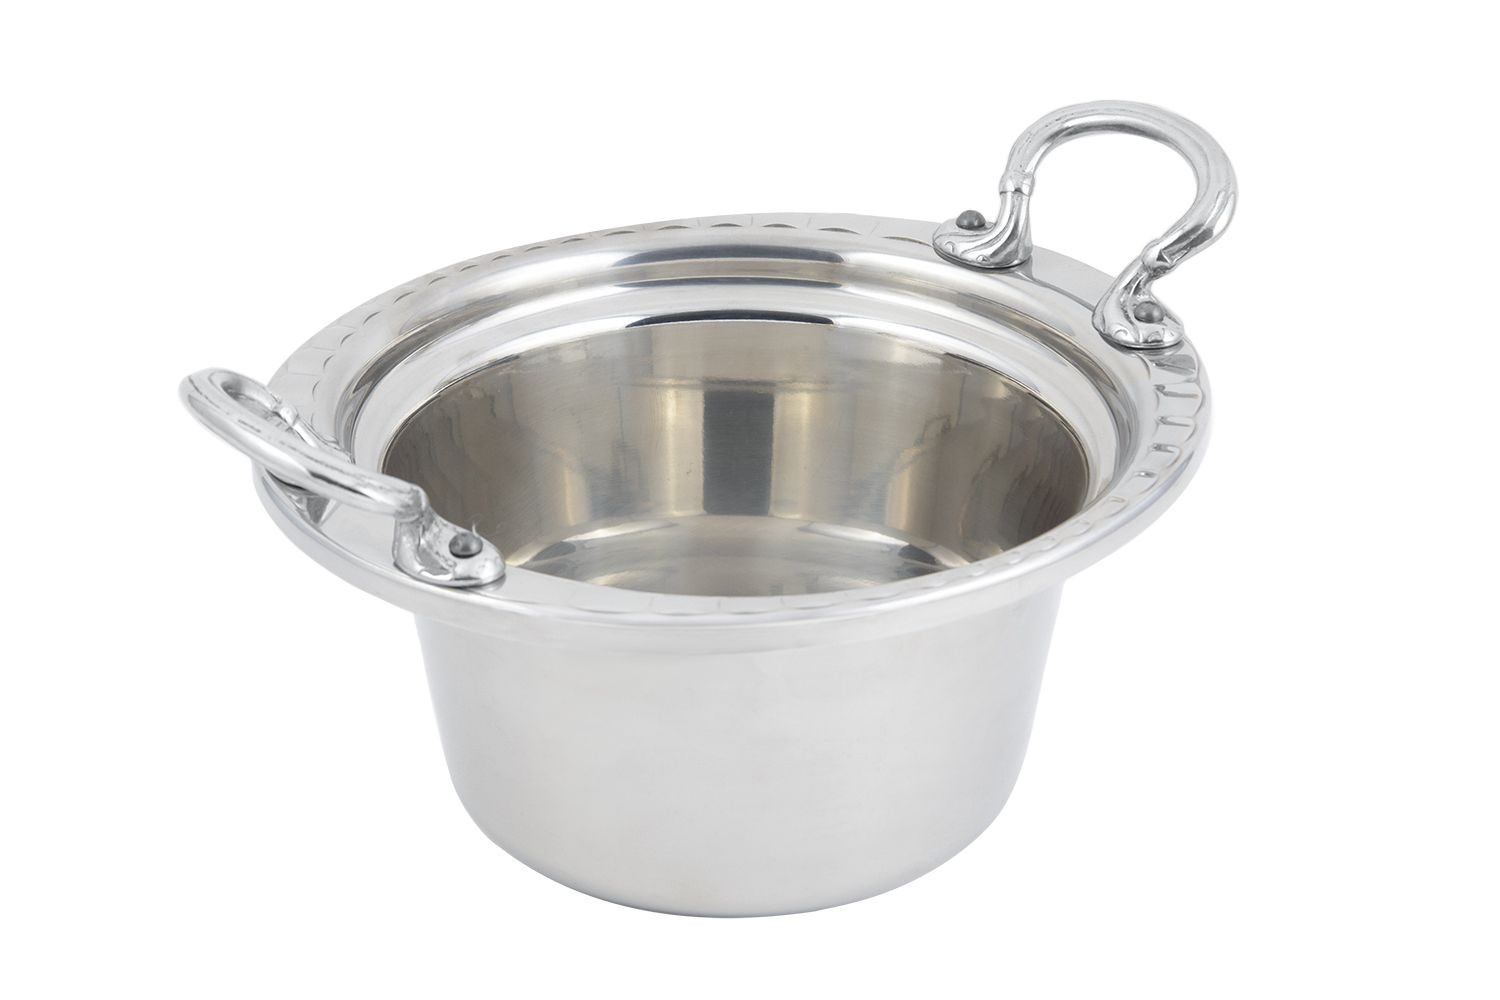 Bon Chef 5650HRSS Arches Design Casserole Dish with Round Handles, 2 Qt.